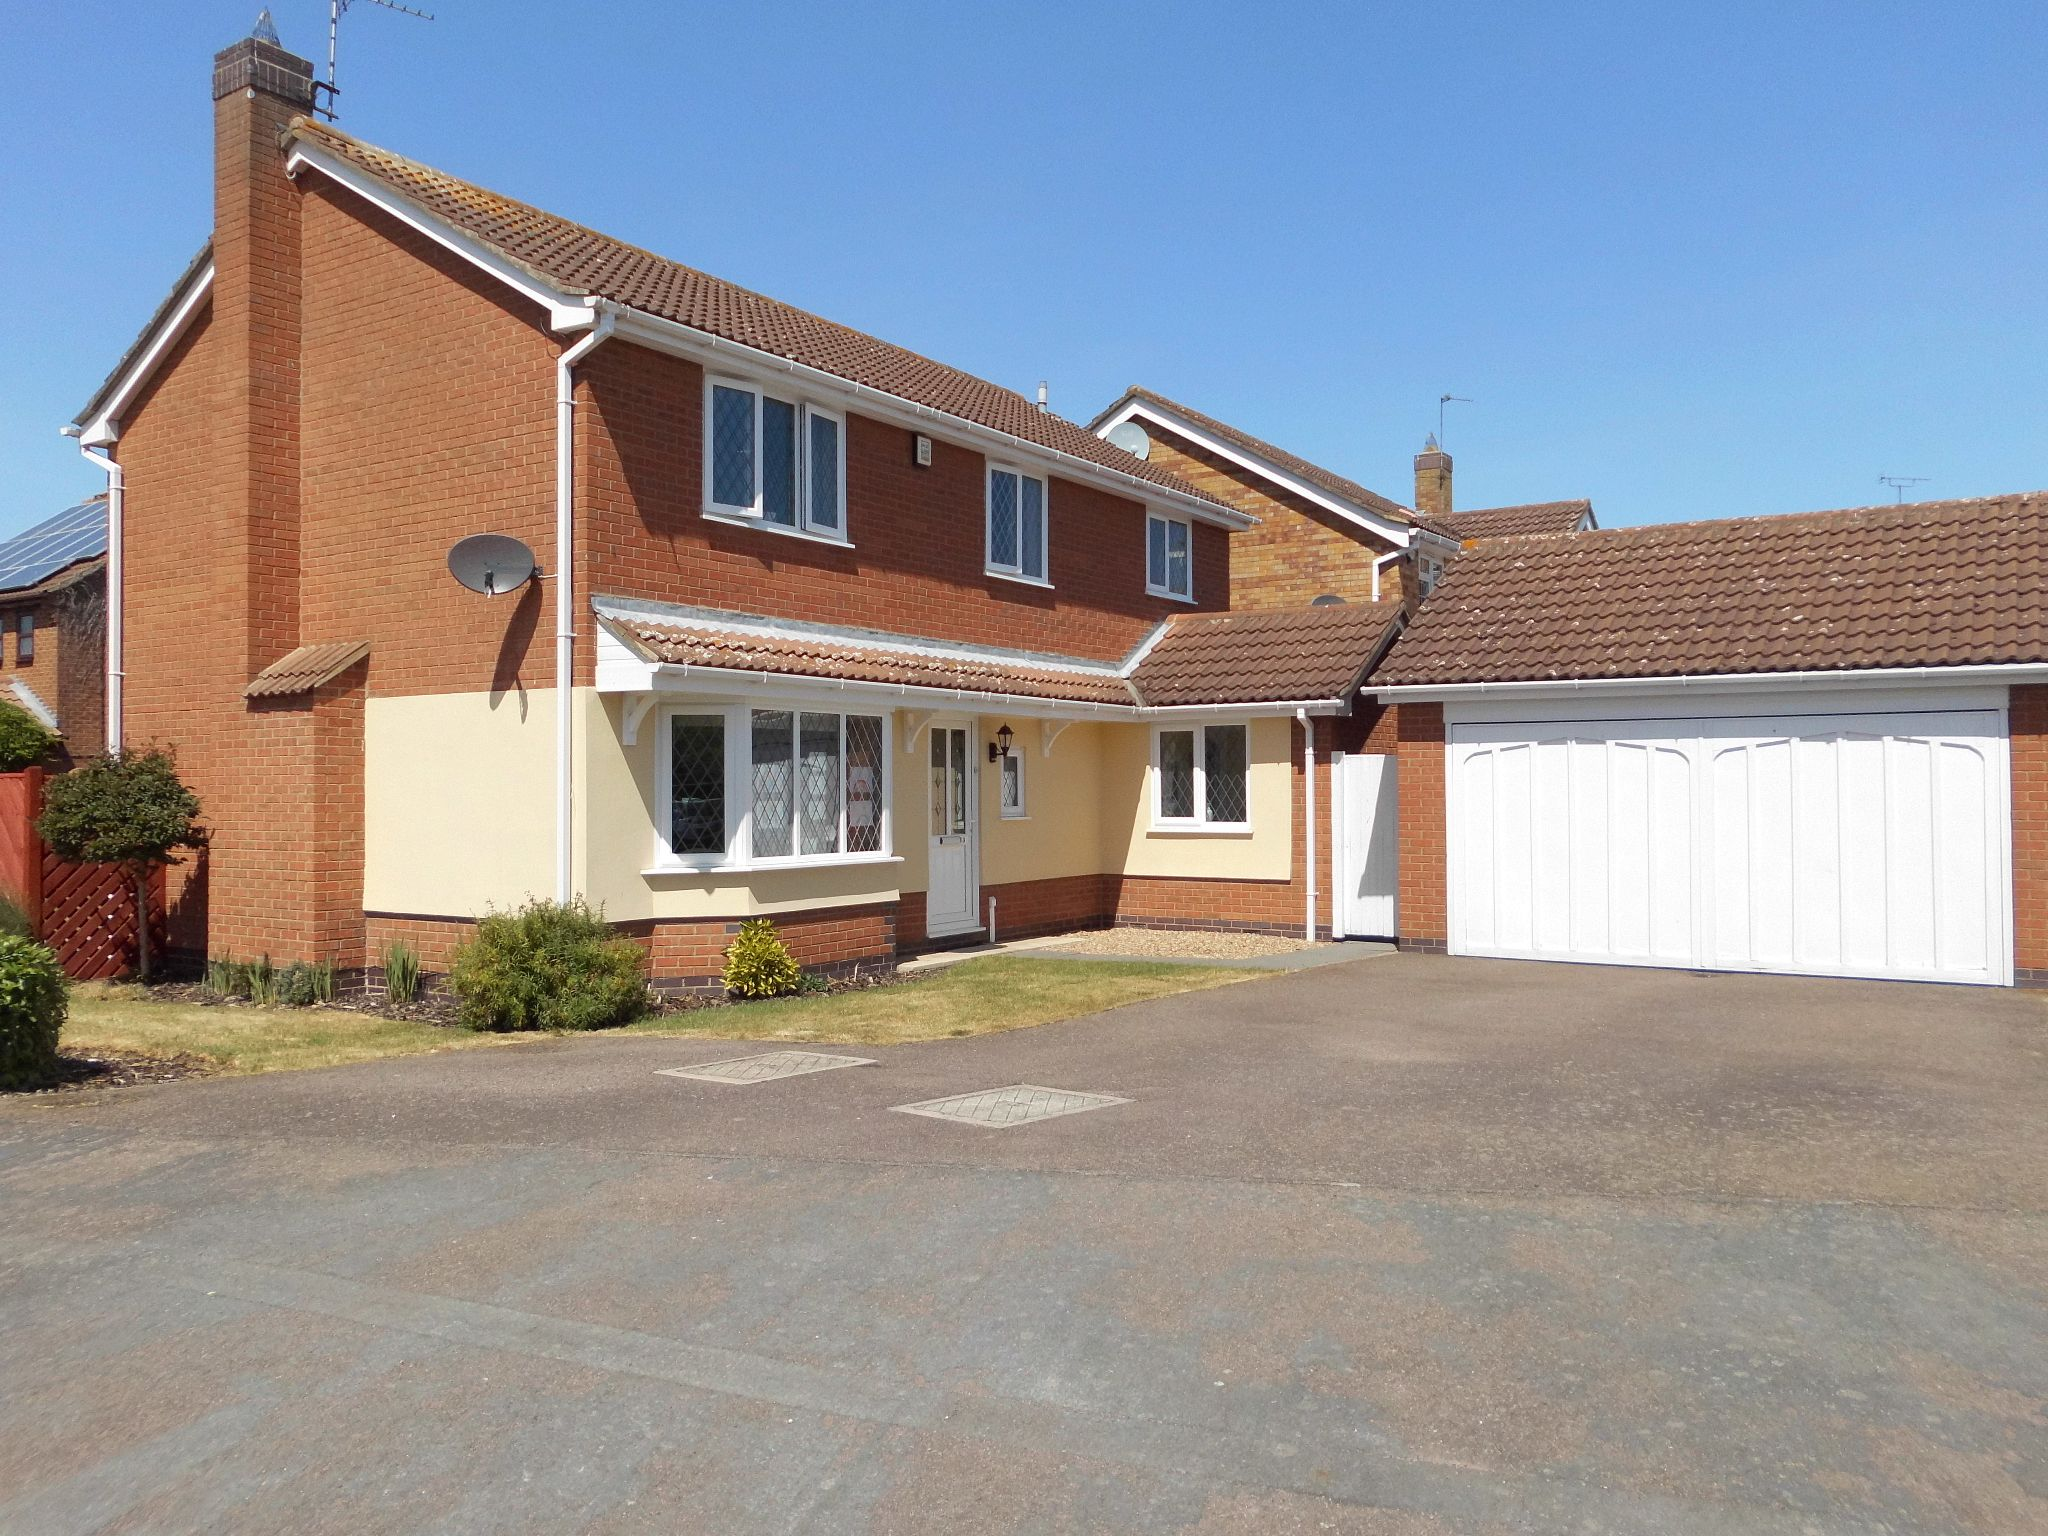 4 bedroom detached house For Sale in Leicester - Photograph 2.